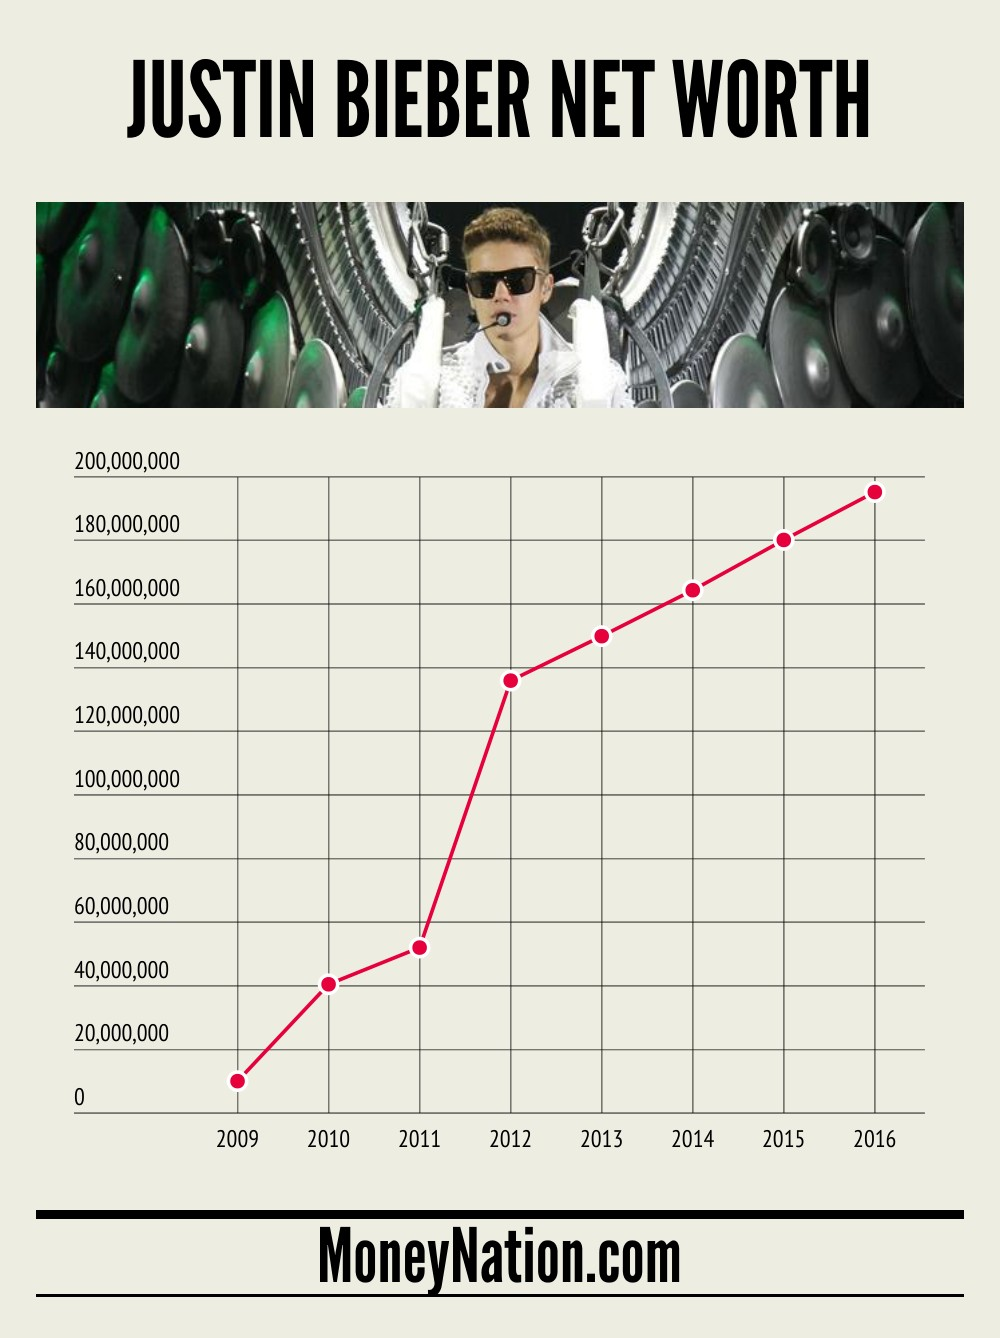 Justin Bieber Net Worth Timeline